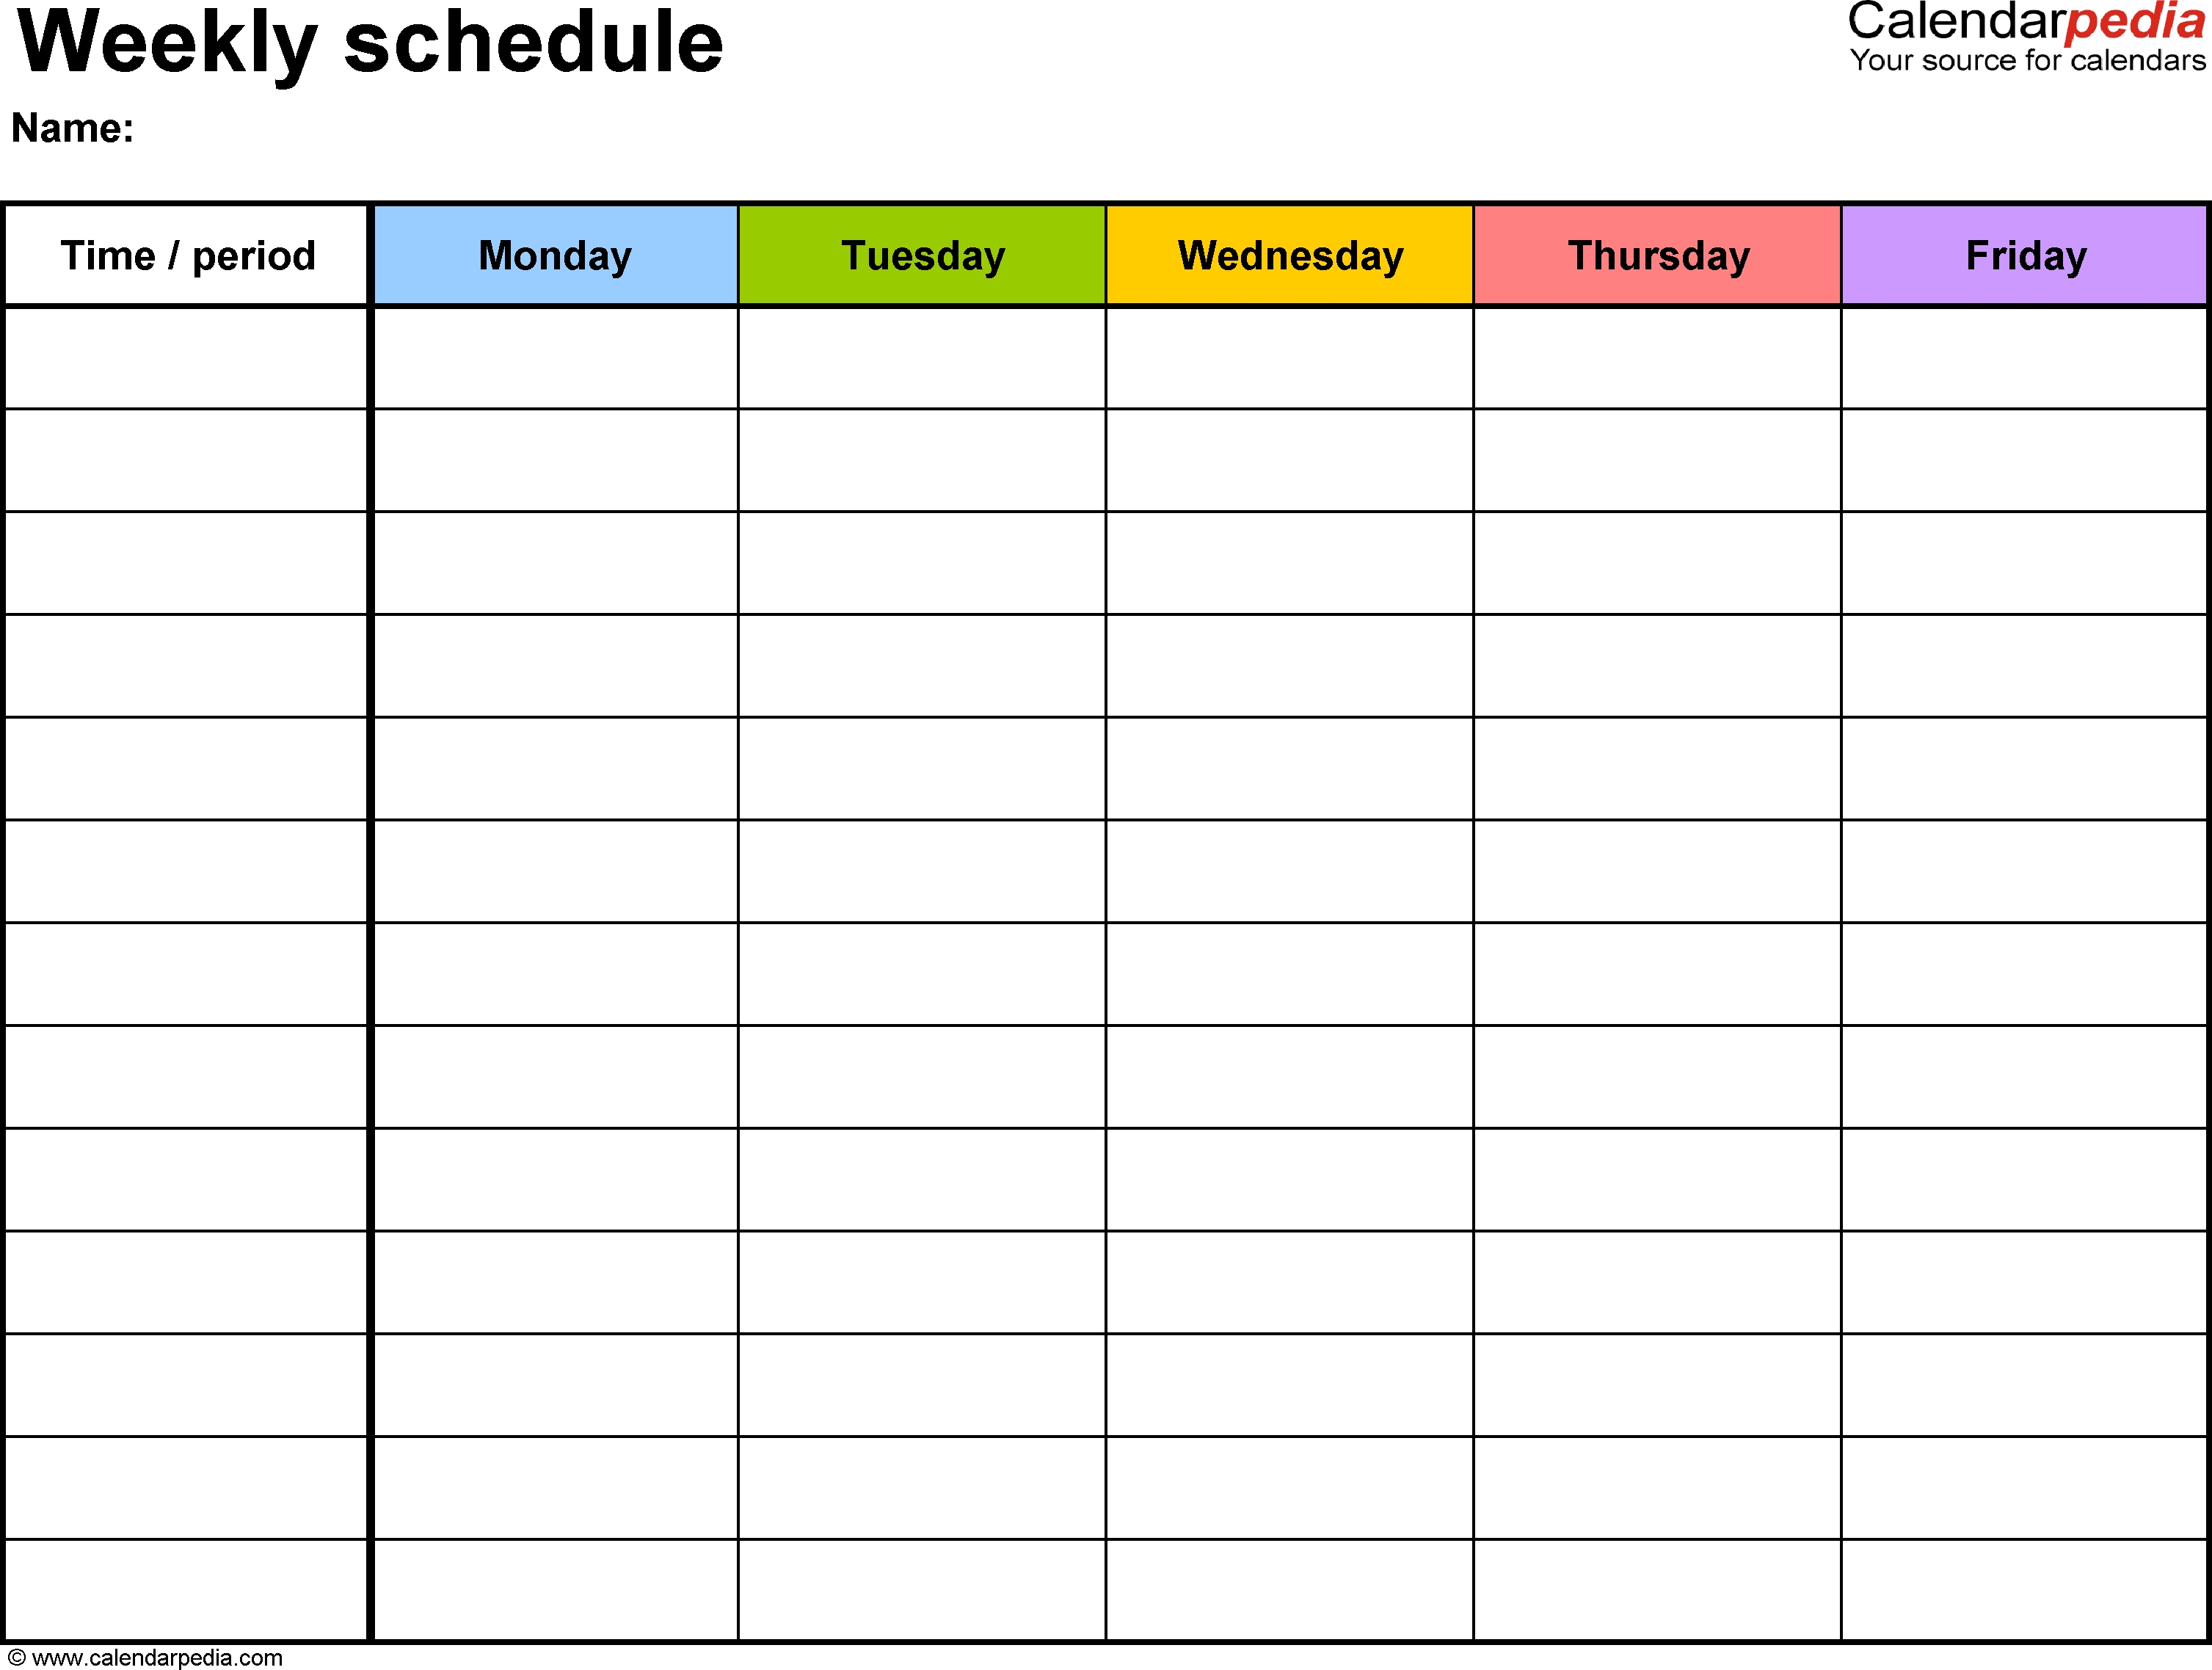 Free Weekly Schedule Templates For Excel - 18 Templates Calendar Template Schedule Monthly